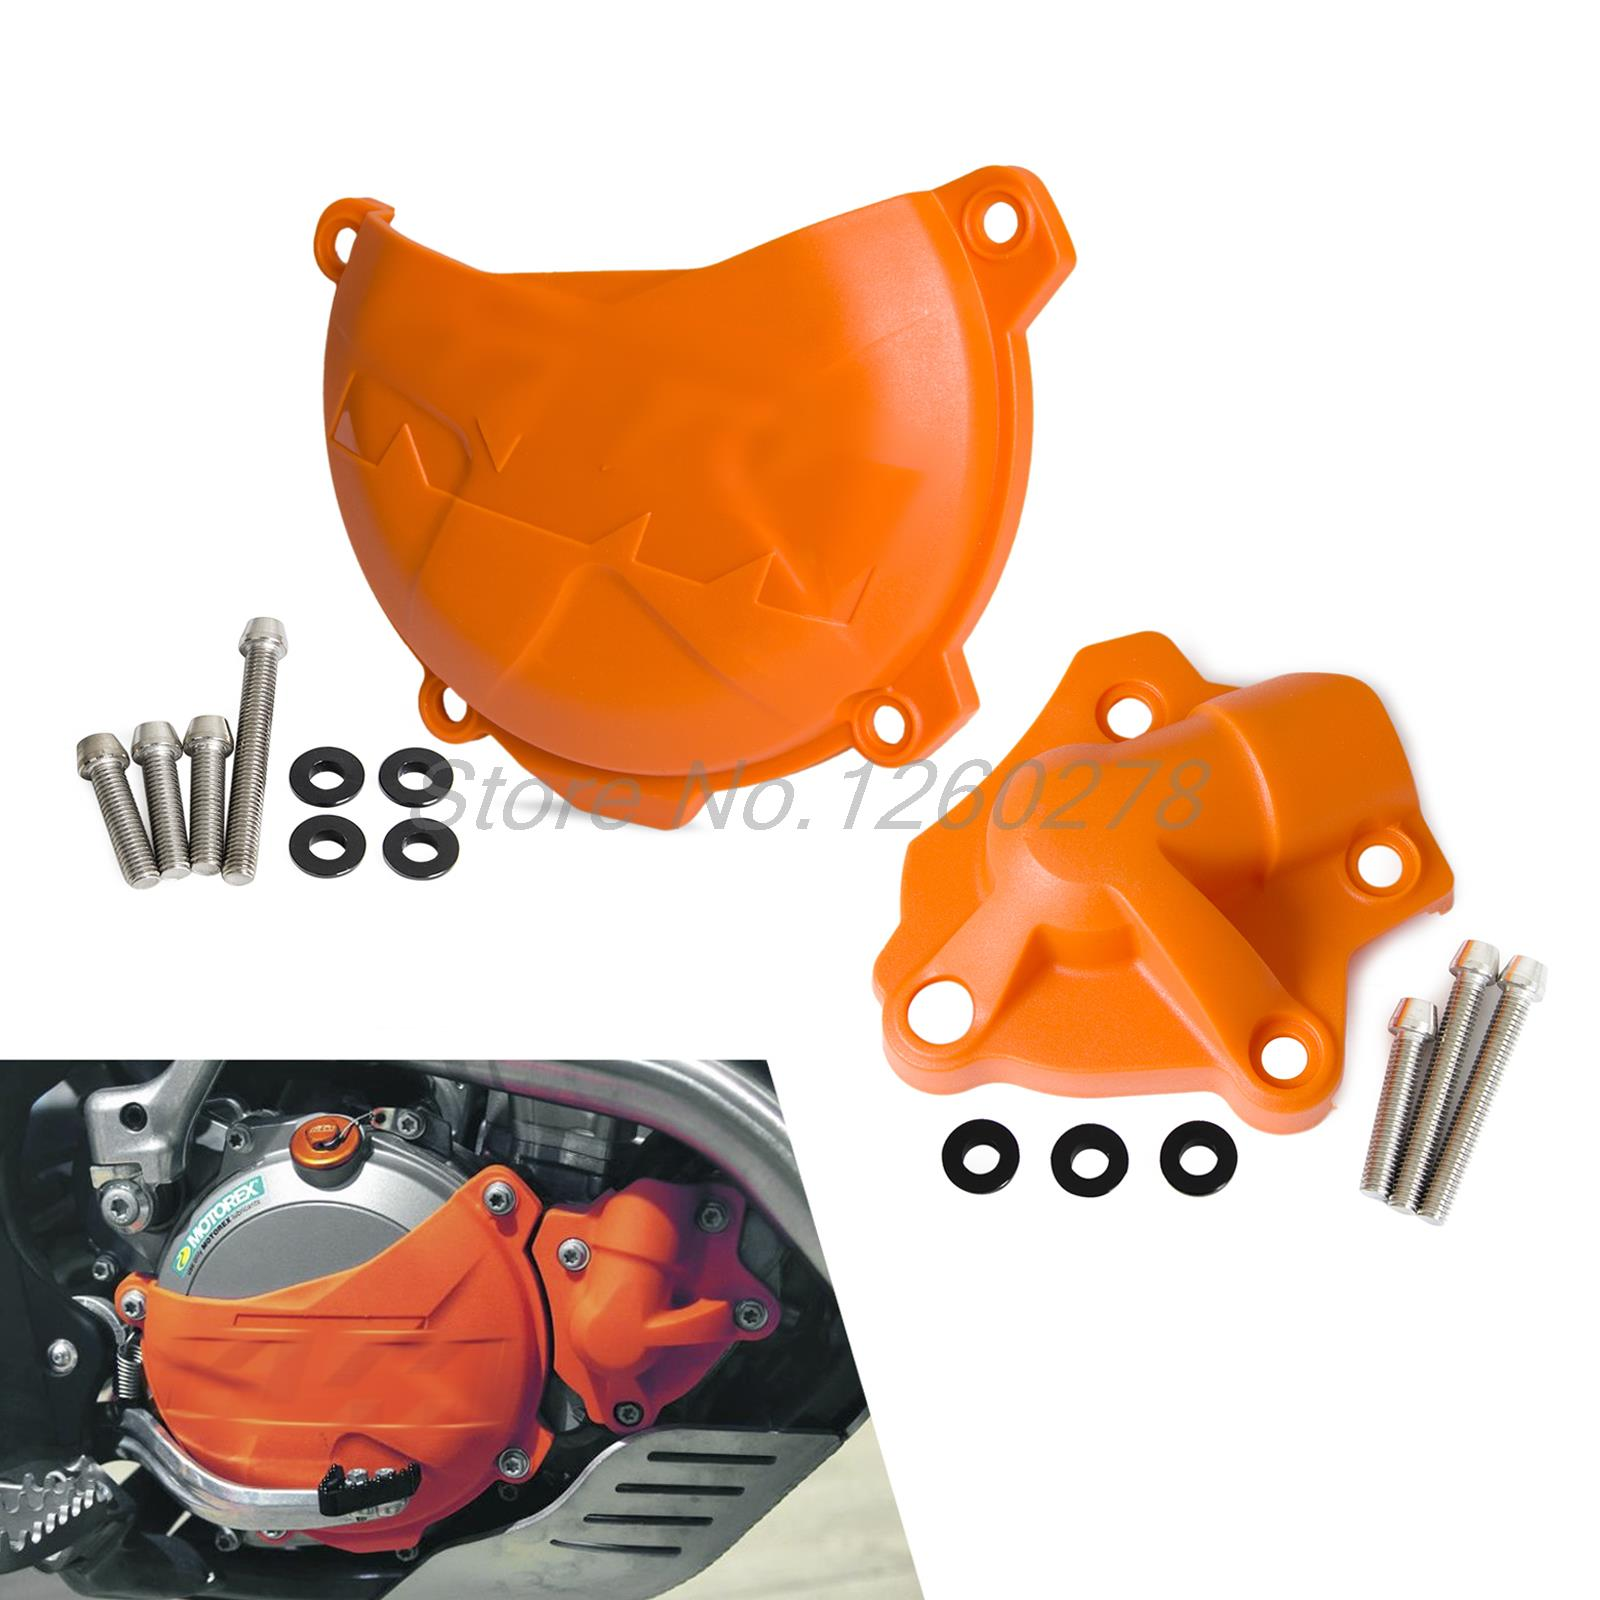 Motorcycle Clutch Cover Protection Cover Water Pump Cover Protector For KTM 250 350 FREERIDE SX-F EXC-F XC-F XCF-W SIX DAYS clutch cover protection cover for ktm 250 sx f 250 xc f 350 xc f 2013 2014 2015